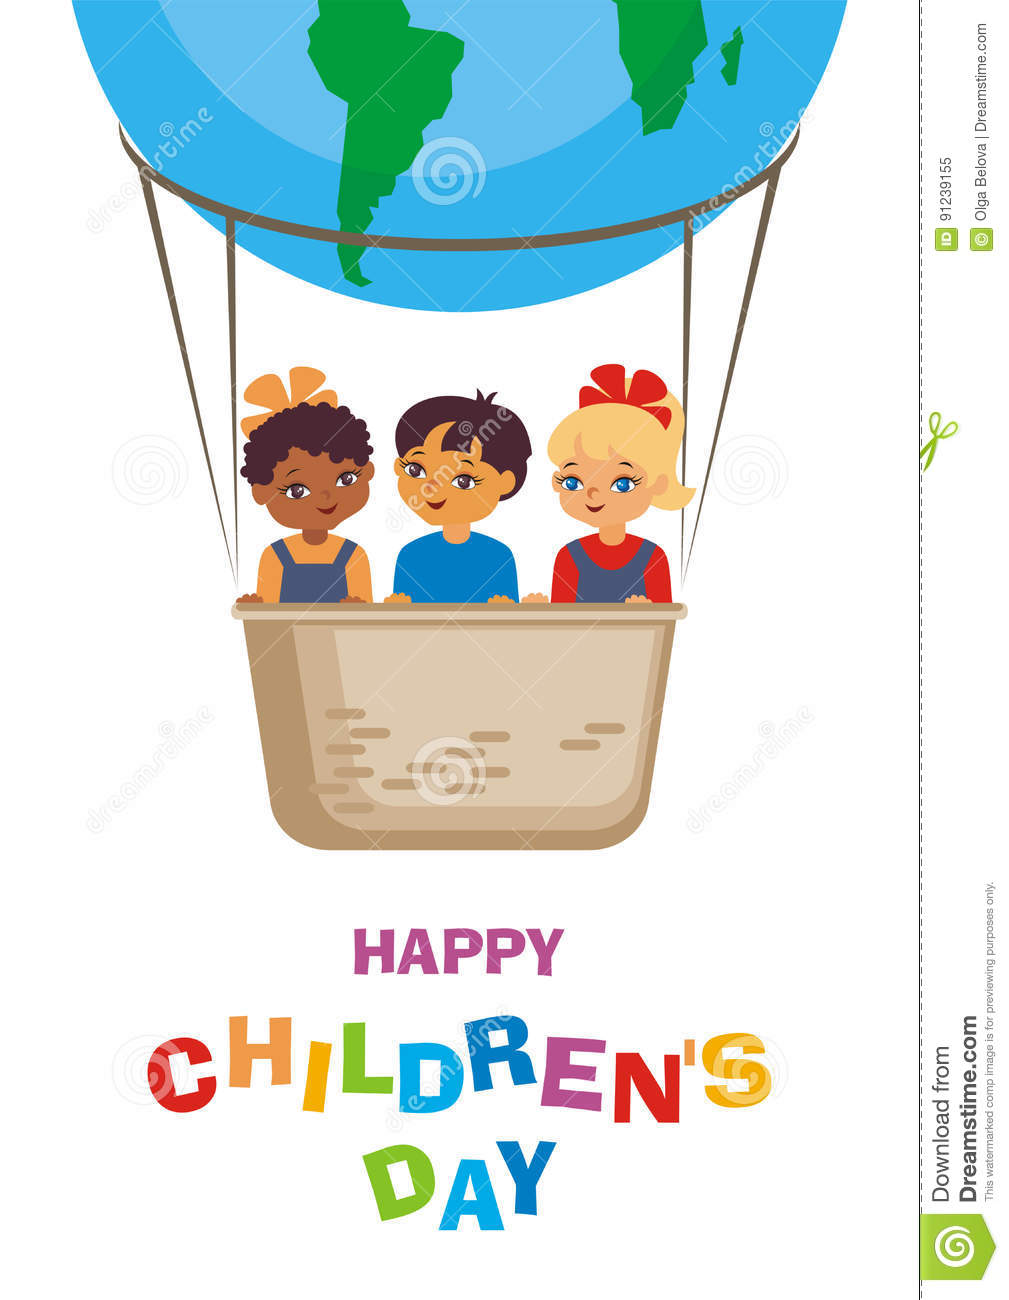 Happy Children Day Card Stock Vector Illustration Of Balloon 91239155